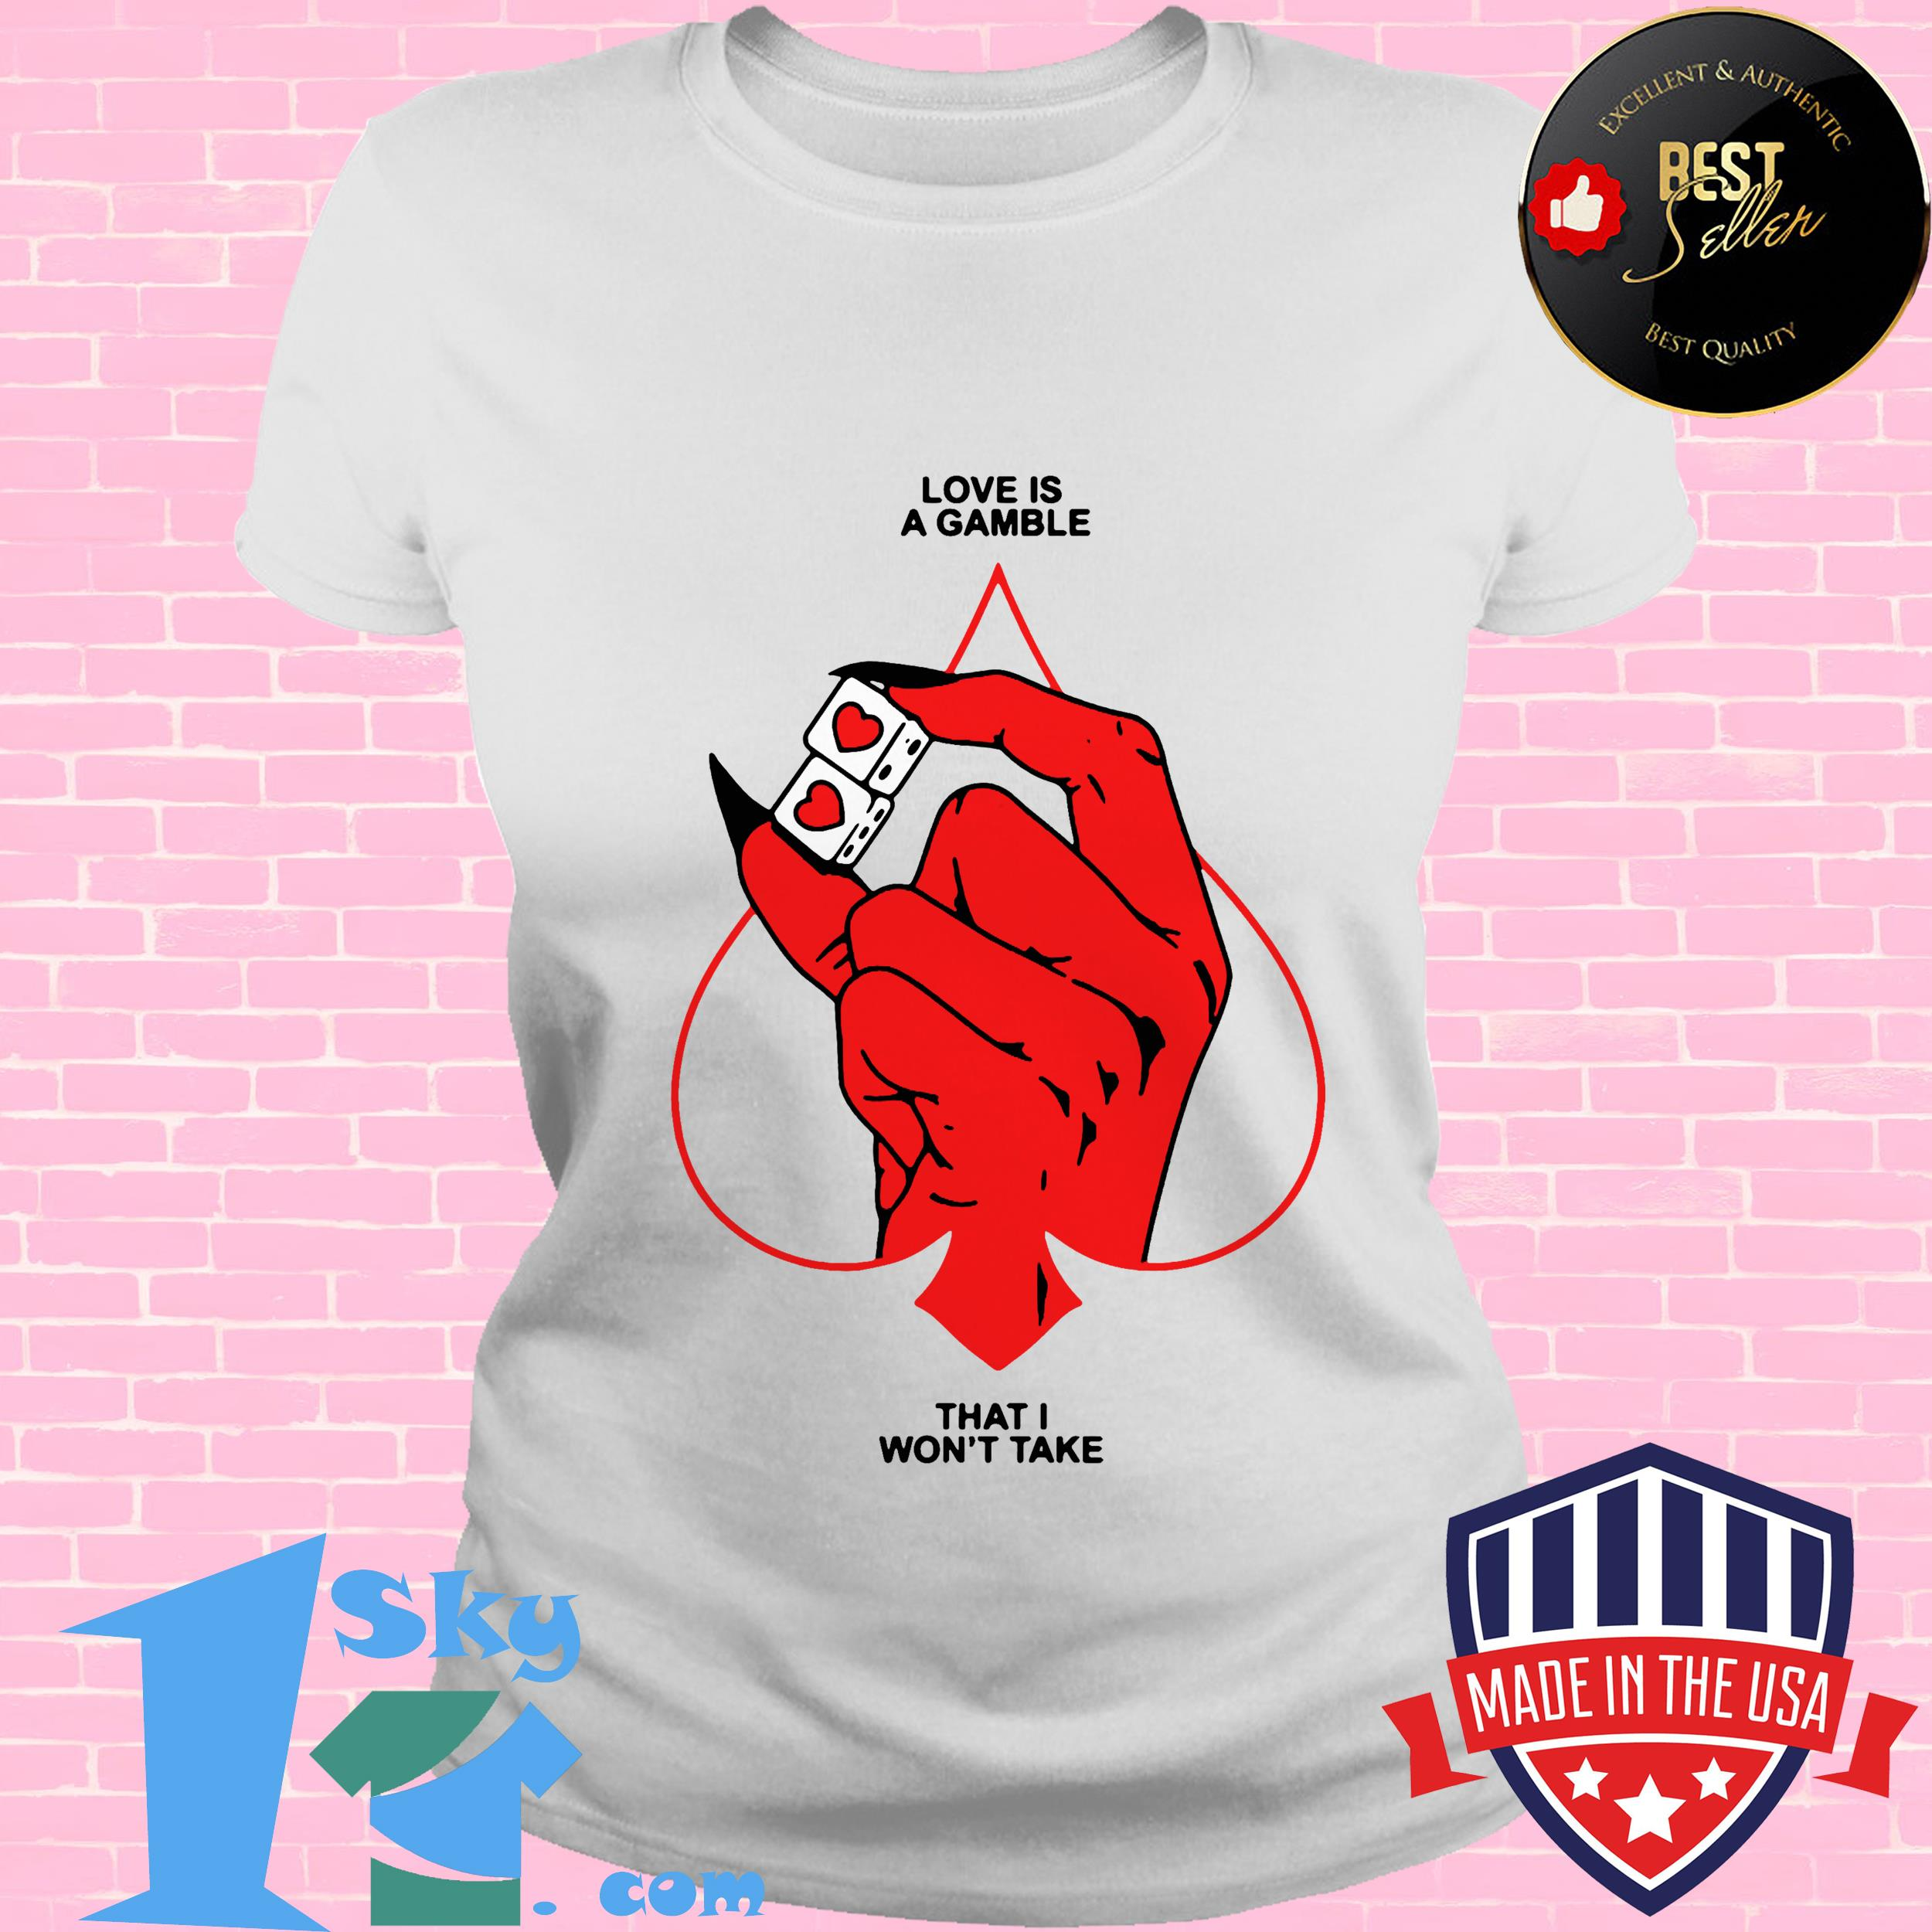 love is a gamble that i wont take ladies tee - Love Is A Gamble That I Won't Take shirt